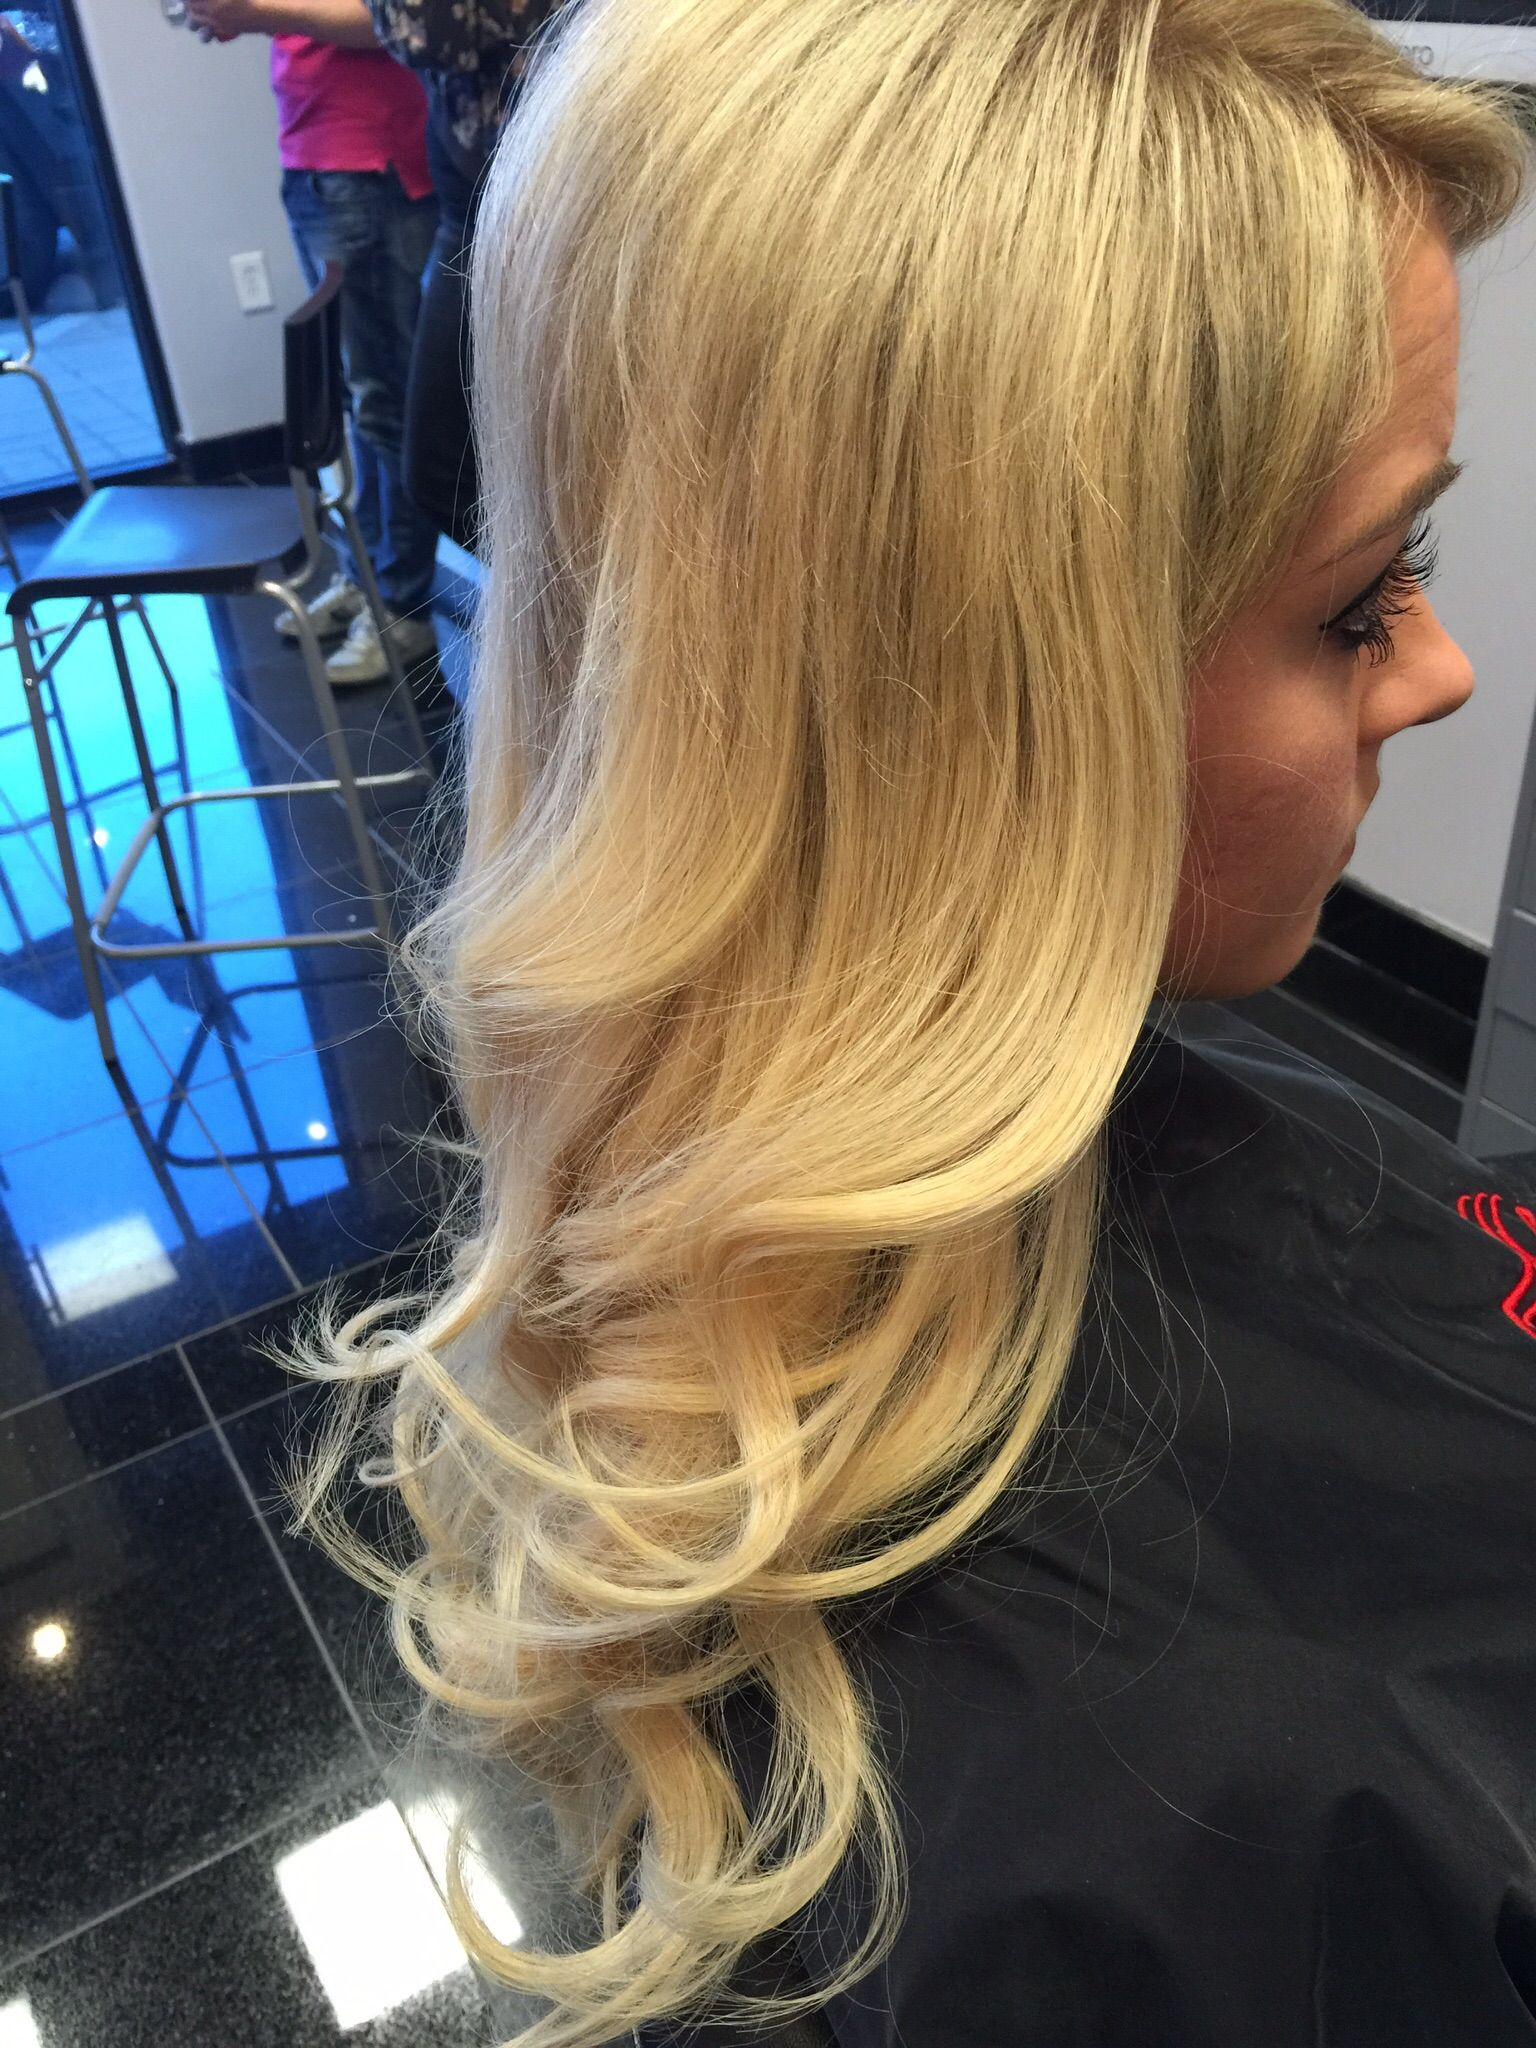 This Is Tiffanys Client After Applying Hairdreams Quikkies